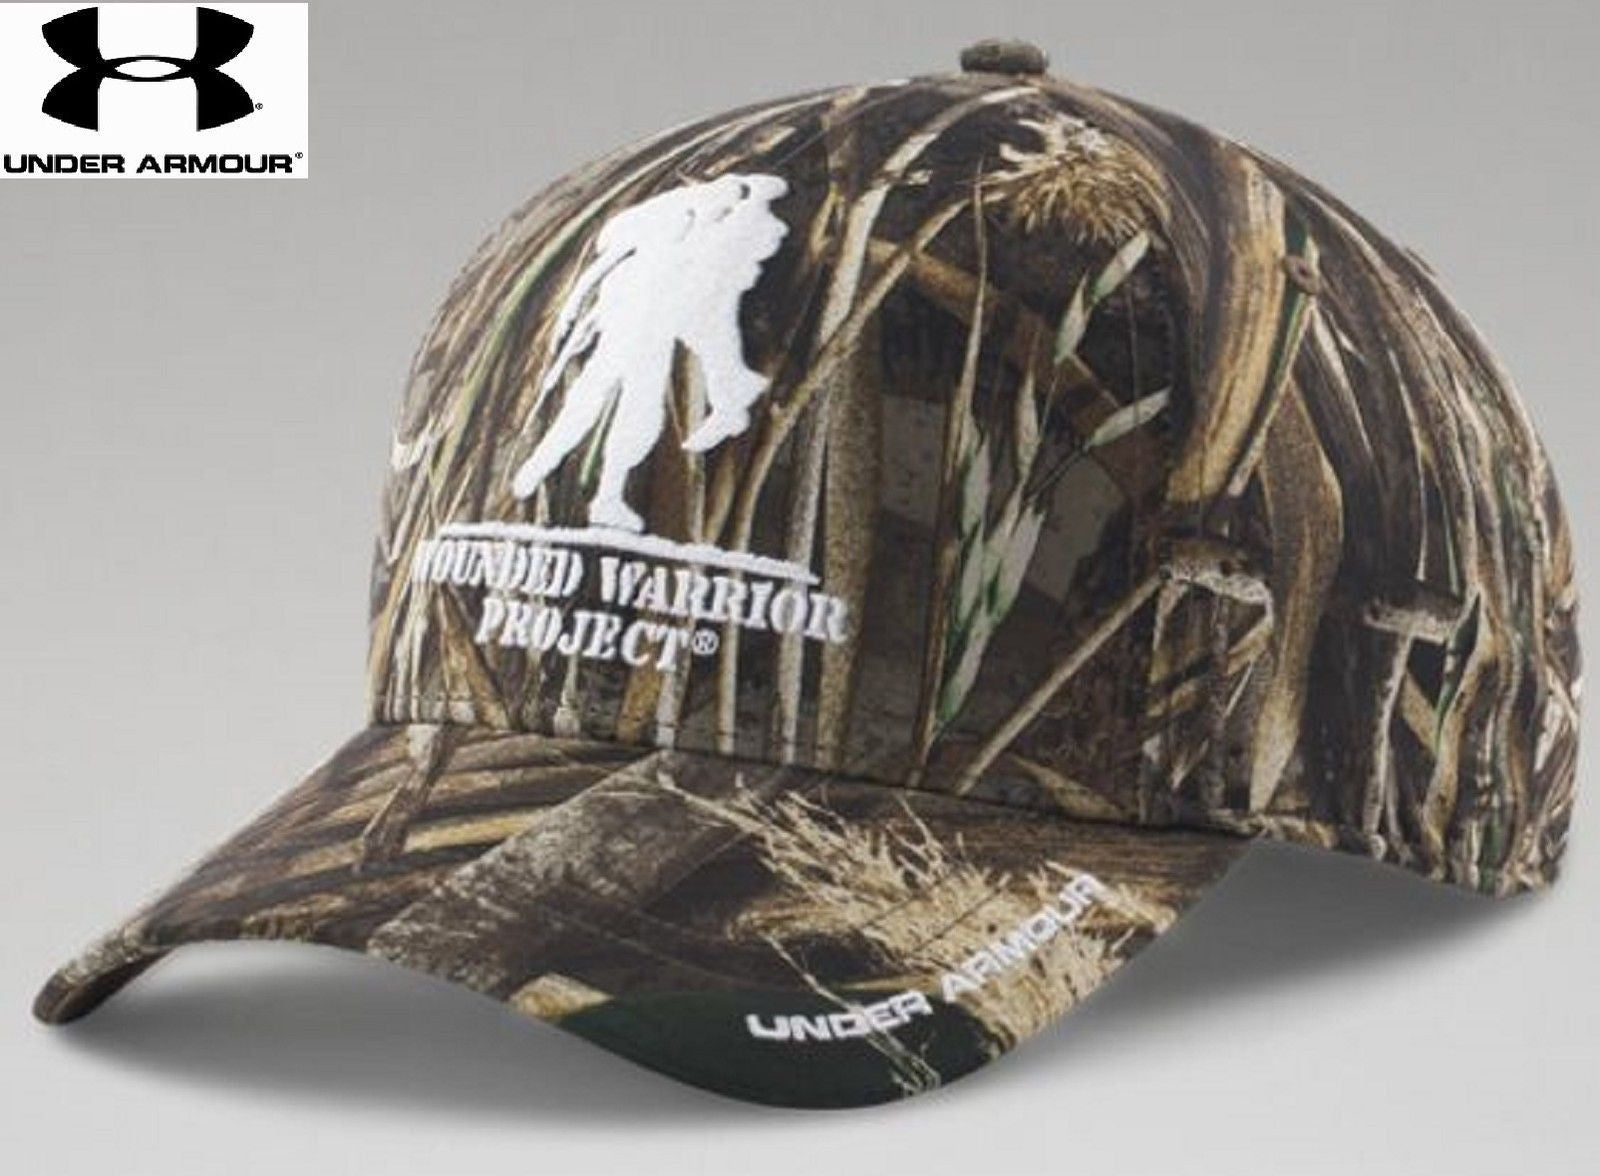 c37bd13e12 Under armour wounded warrior project camo snap cap mens ua embroidered hat  realtree max jpg 1600x1176